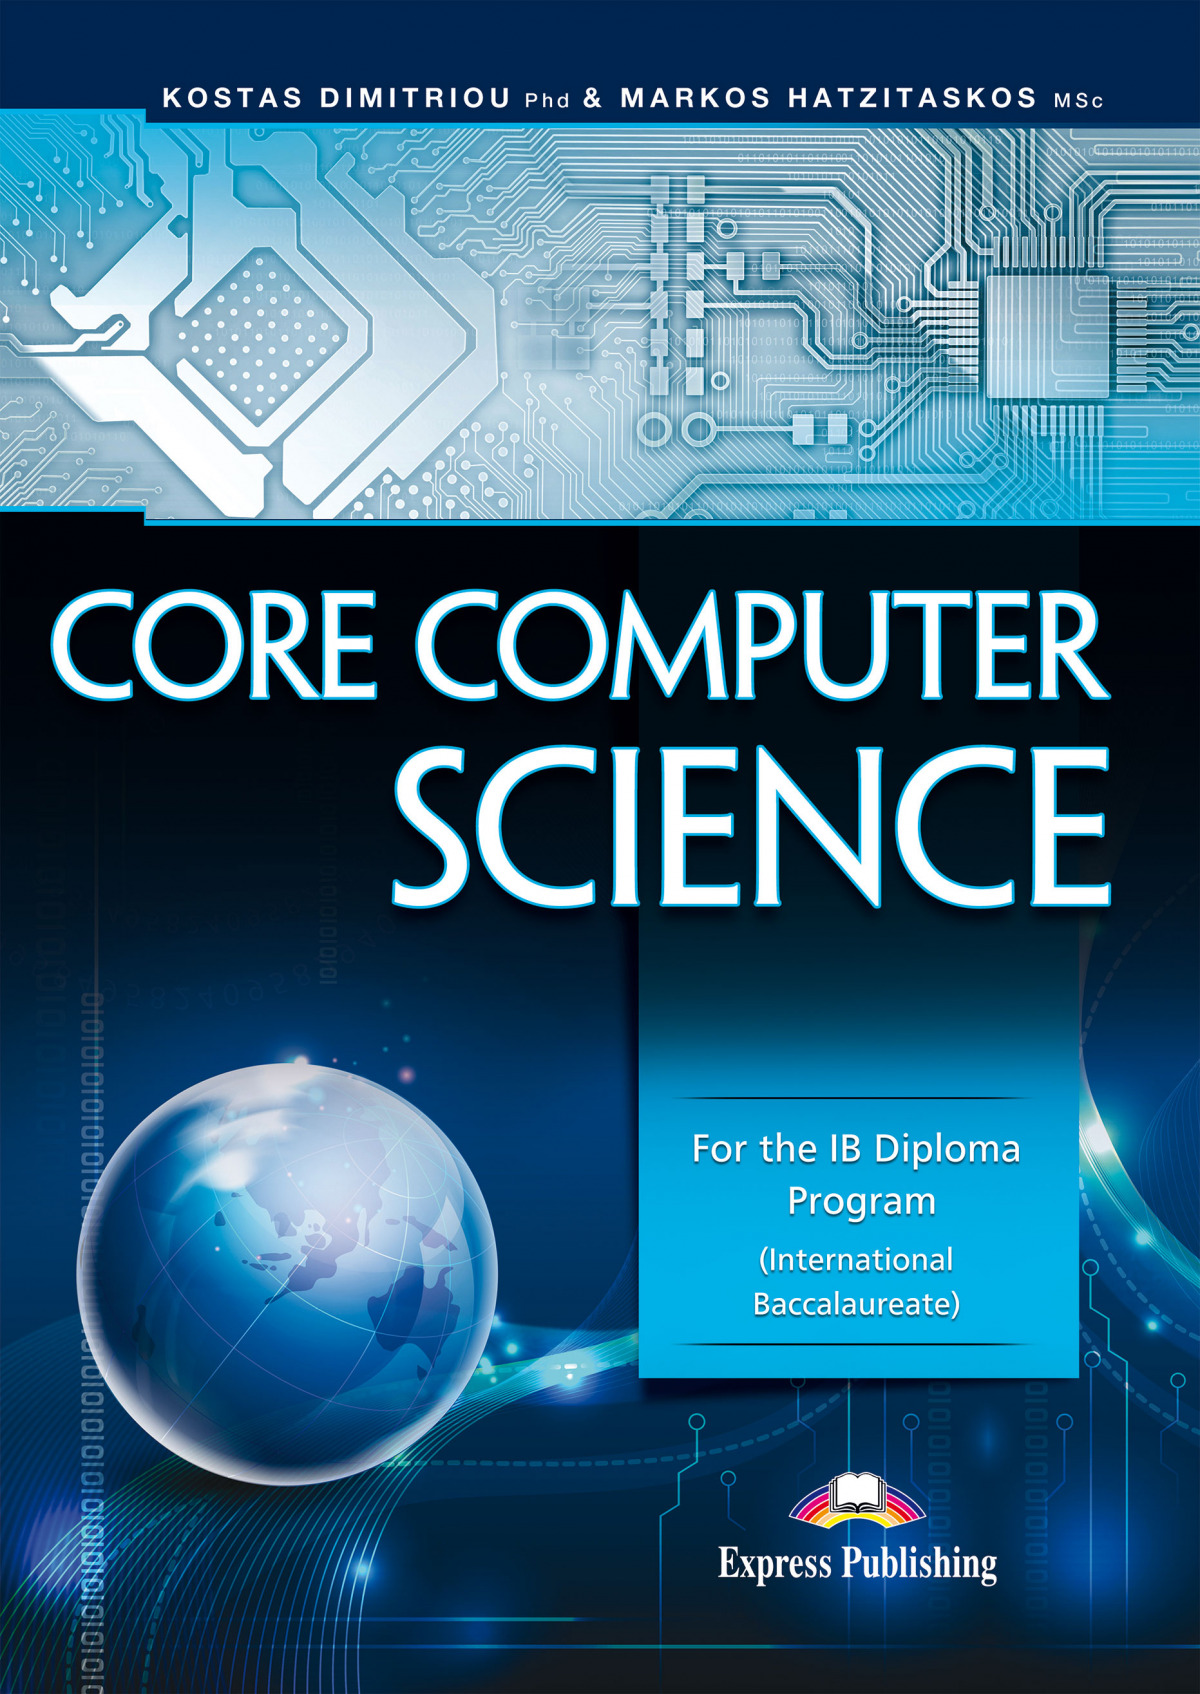 CORE COMPUTER SCIENCE FOR THE IB DIPLOMA PROGRAM INTERNATIONAL BACCALAUREATE